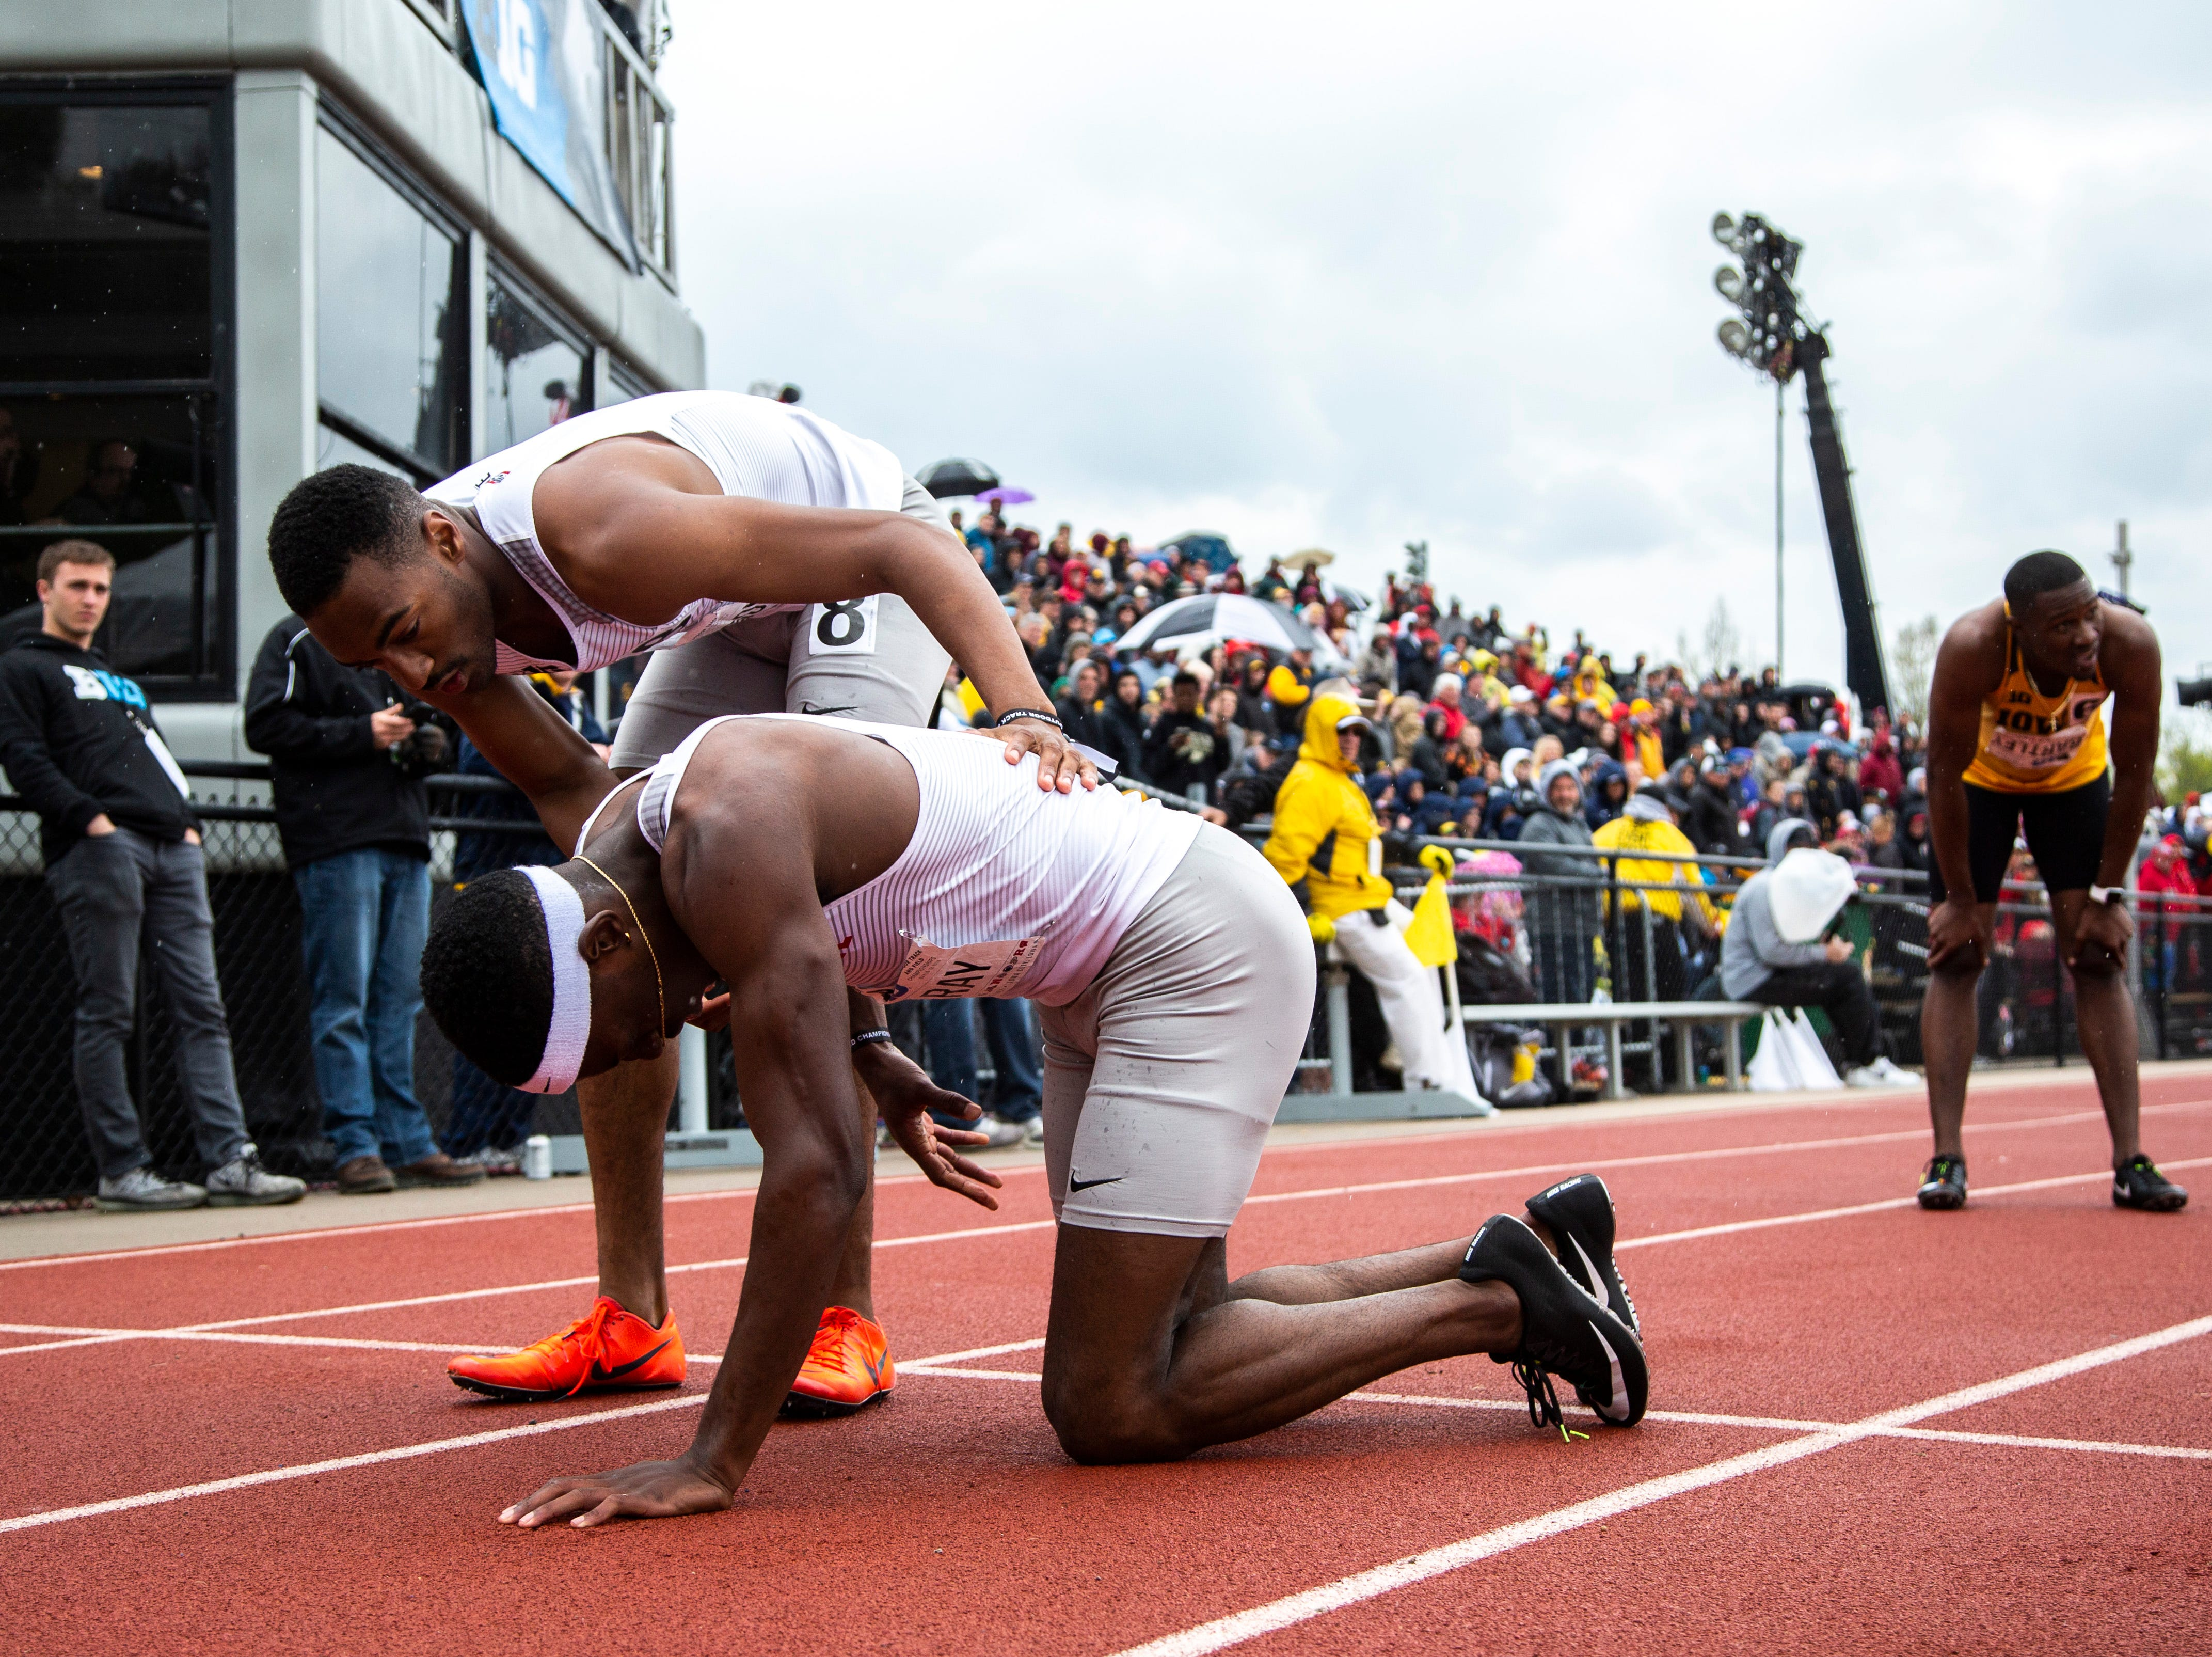 Ohio State senior Nick Gray gets comforted by teammate Tyler Johnson (8) after crossing the finish line in the 200 meter dash during the final day of Big Ten track and field outdoor championships, Sunday, May 12, 2019, at Francis X. Cretzmeyer Track on the University of Iowa campus in Iowa City, Iowa. Gray finished first, with a time of 20.23.